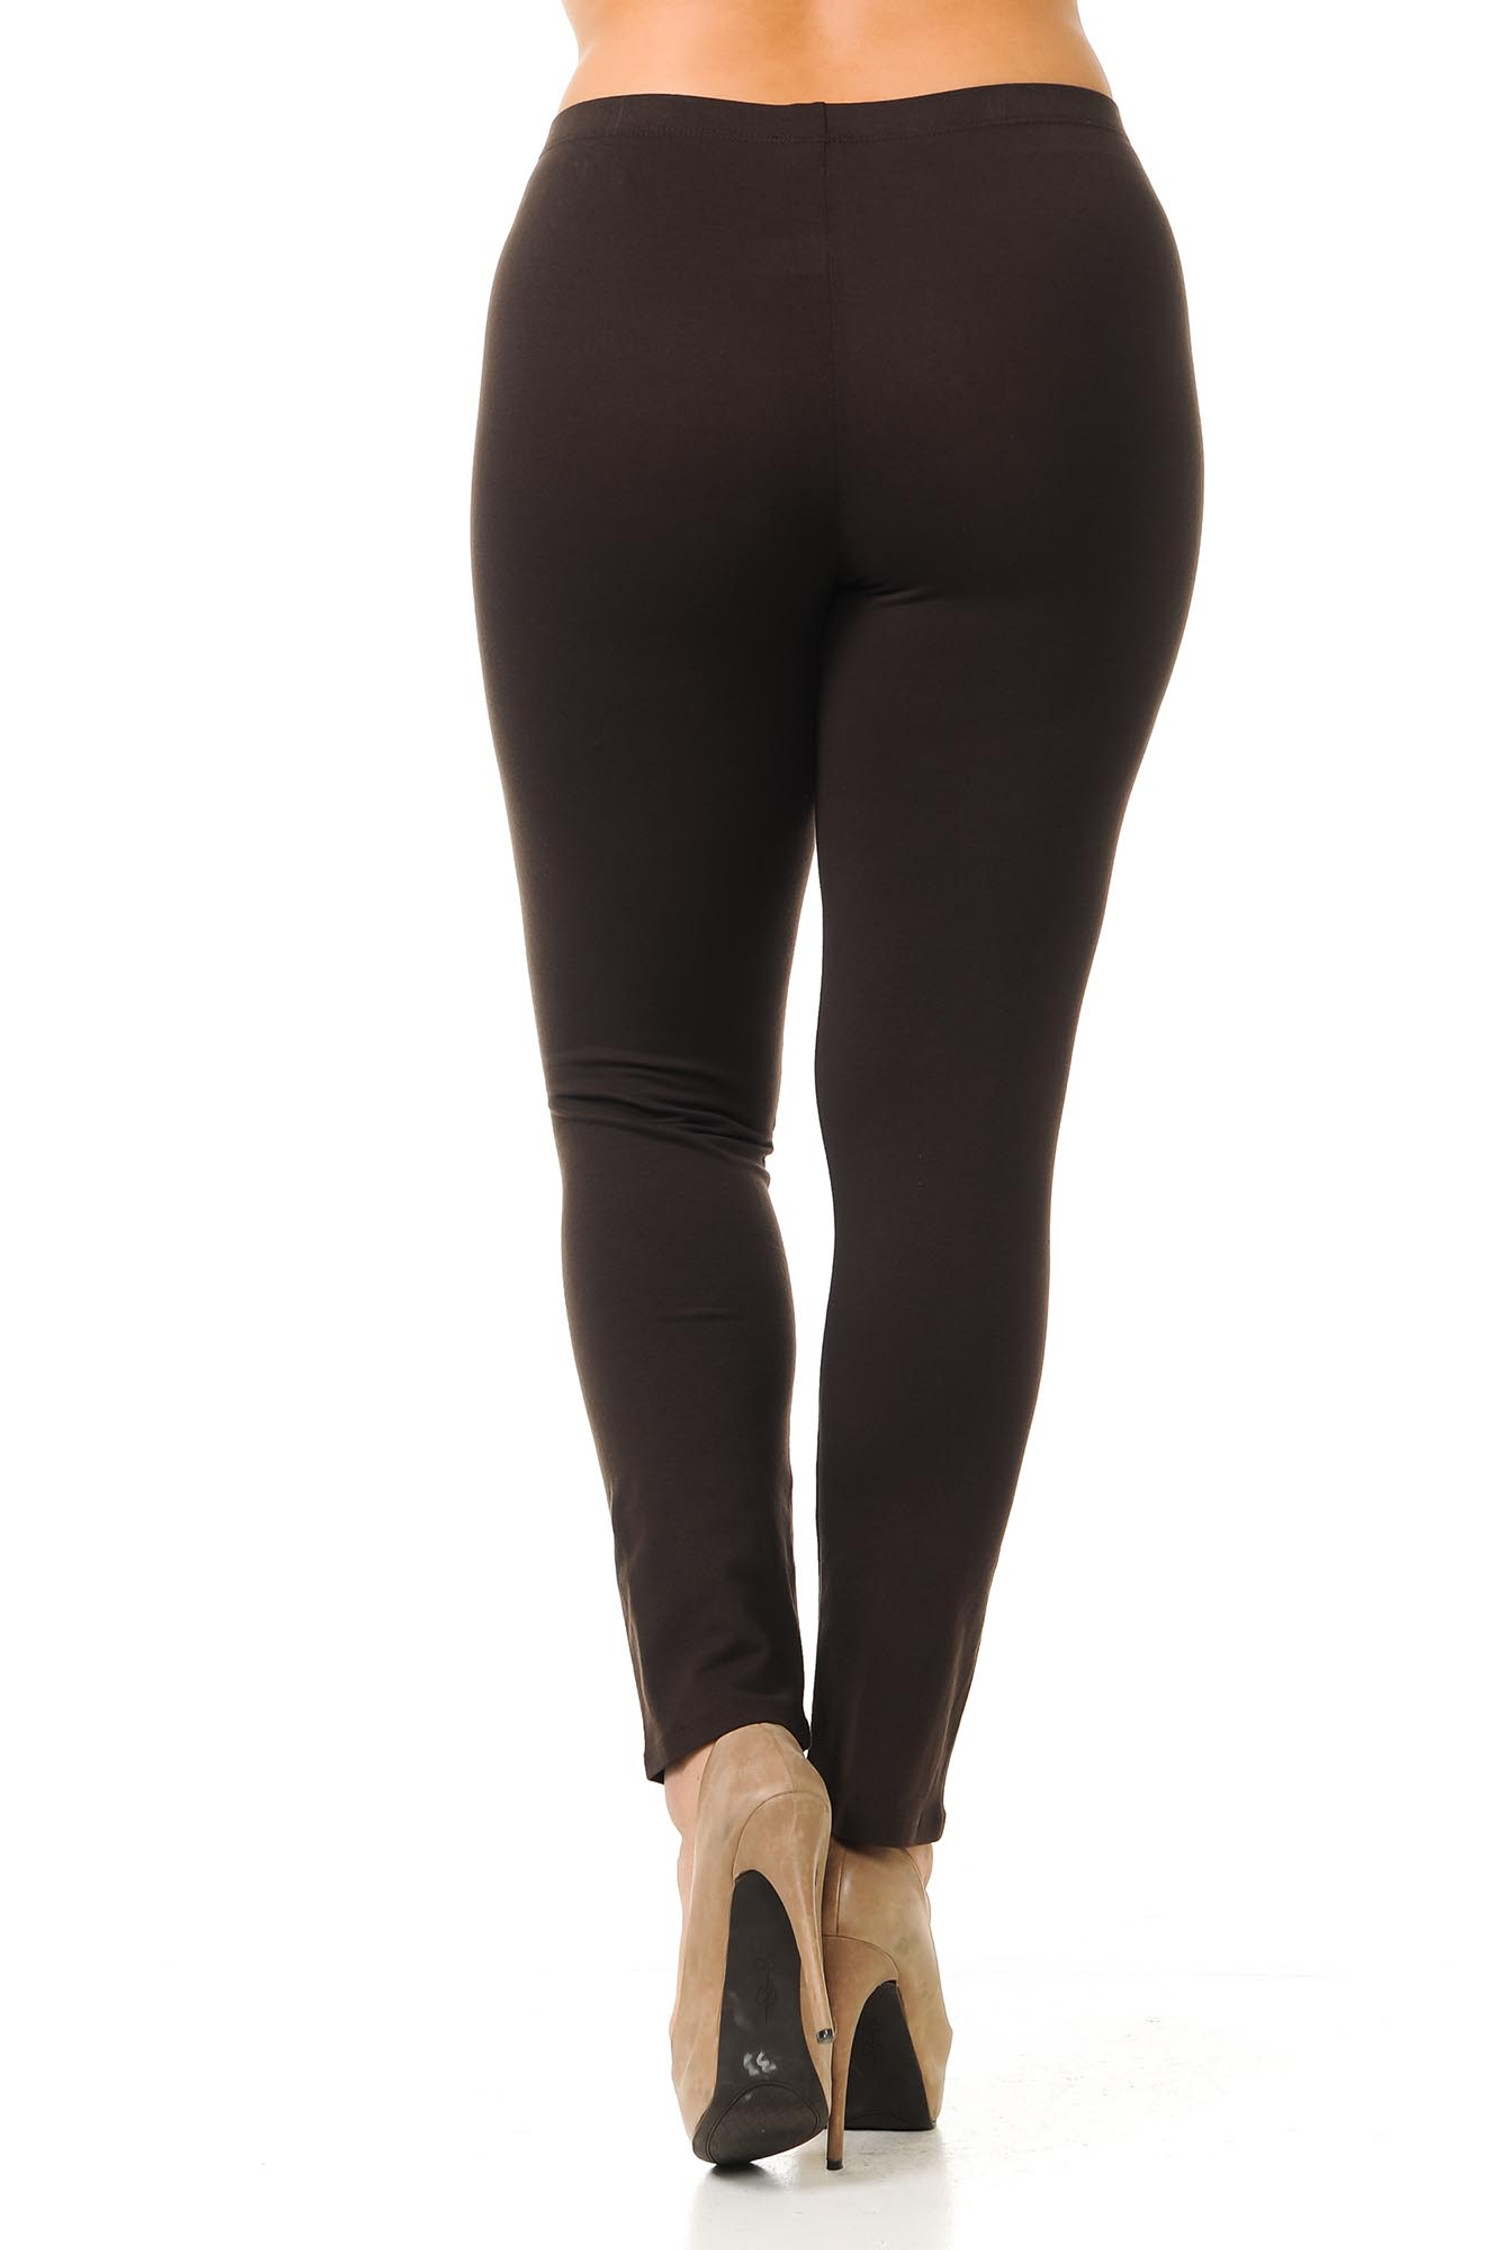 Rear view of full length brown made in the USA cotton plus size leggings.